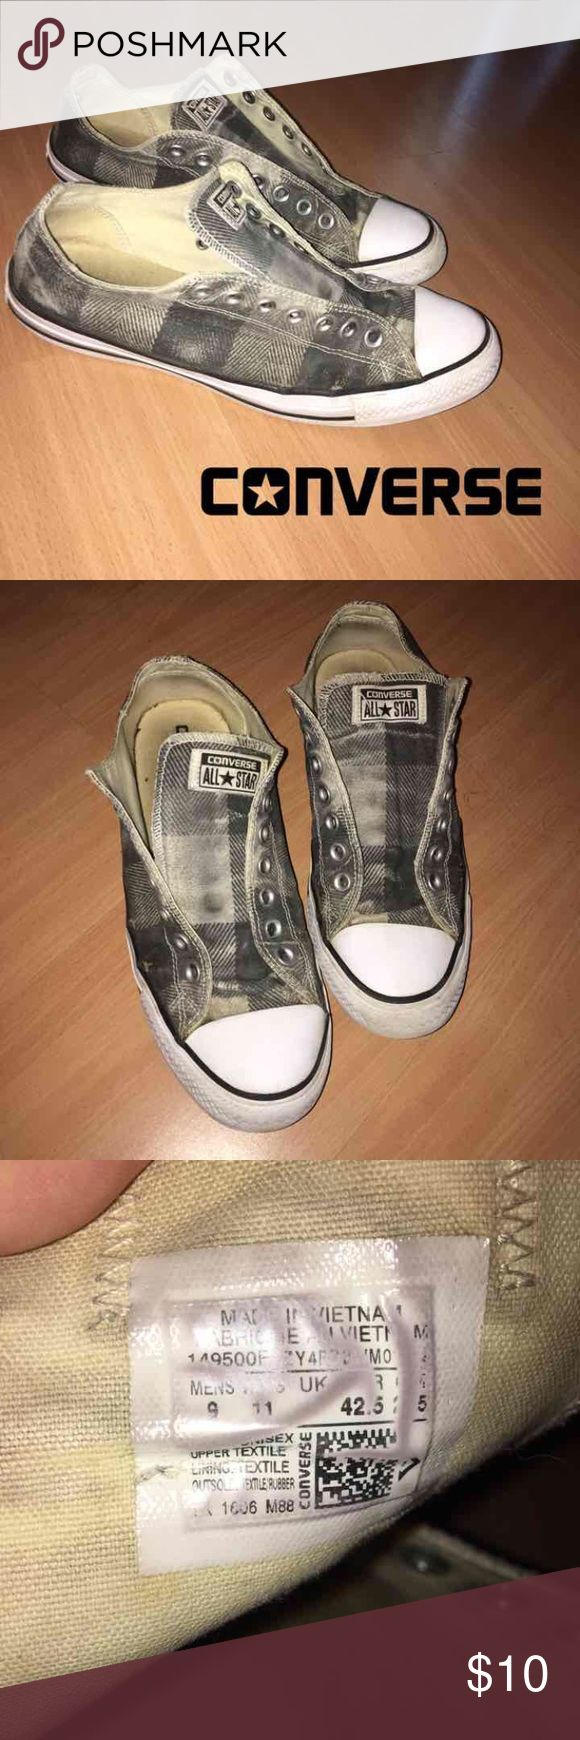 Men's converse Men's low top grey plaid converse no string. The color is fading but they're still great quality! Size 9 men women's 11 Converse Shoes Sneakers